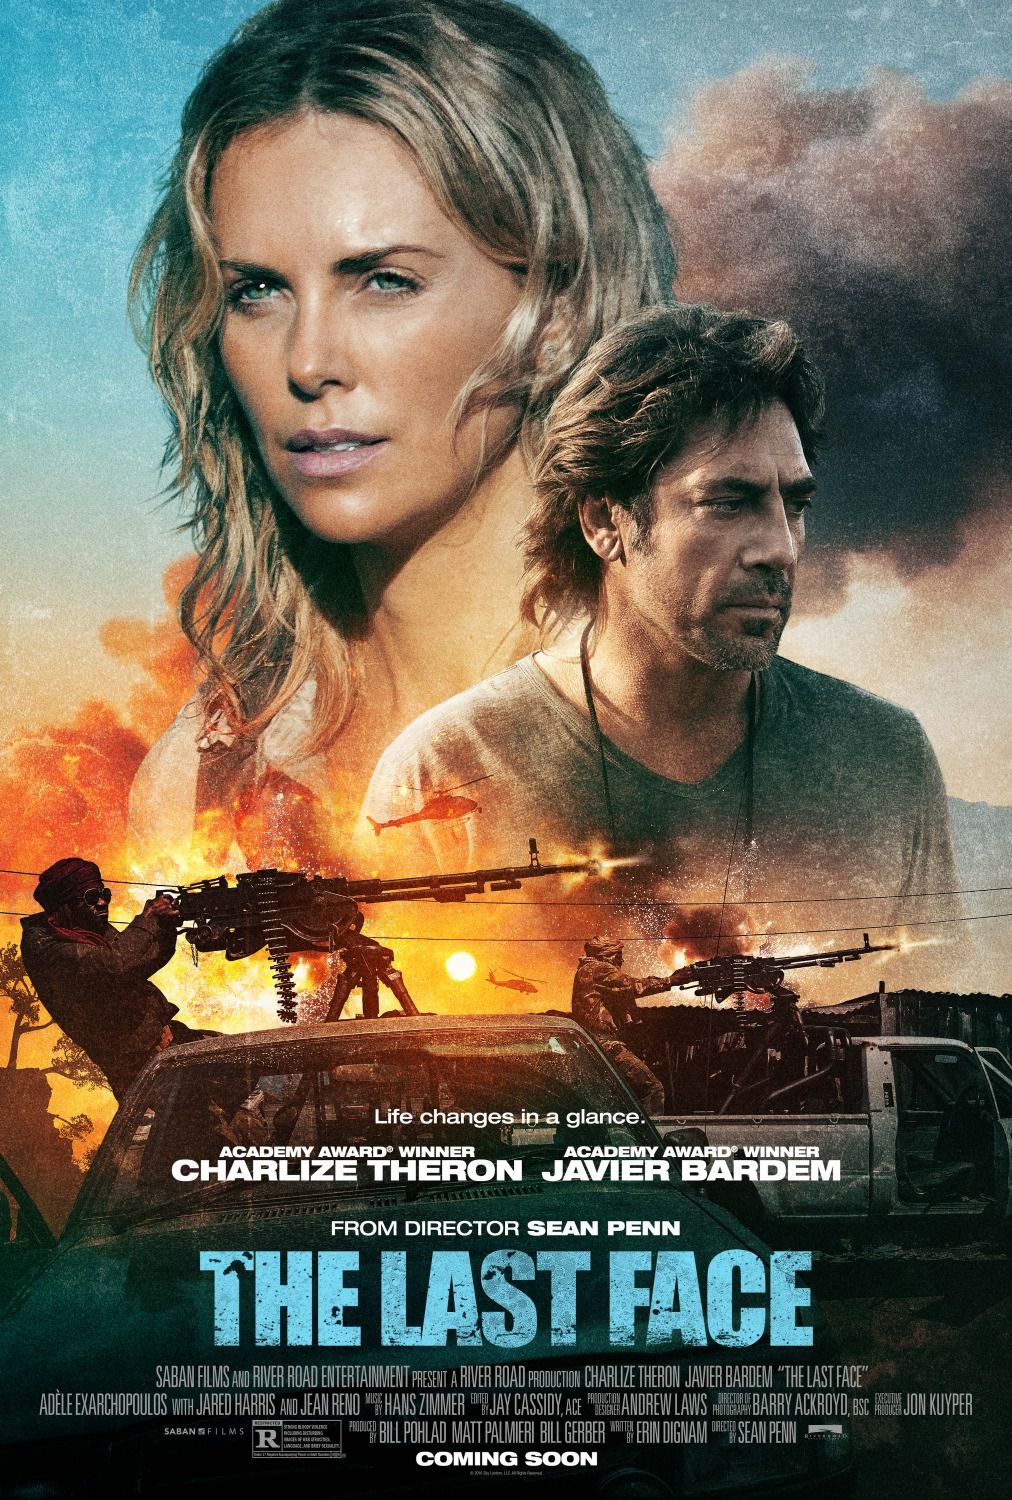 The Last Face - life change in a glance - Charlize Theron - Javier Bardem from Director Sean Penn - film poster